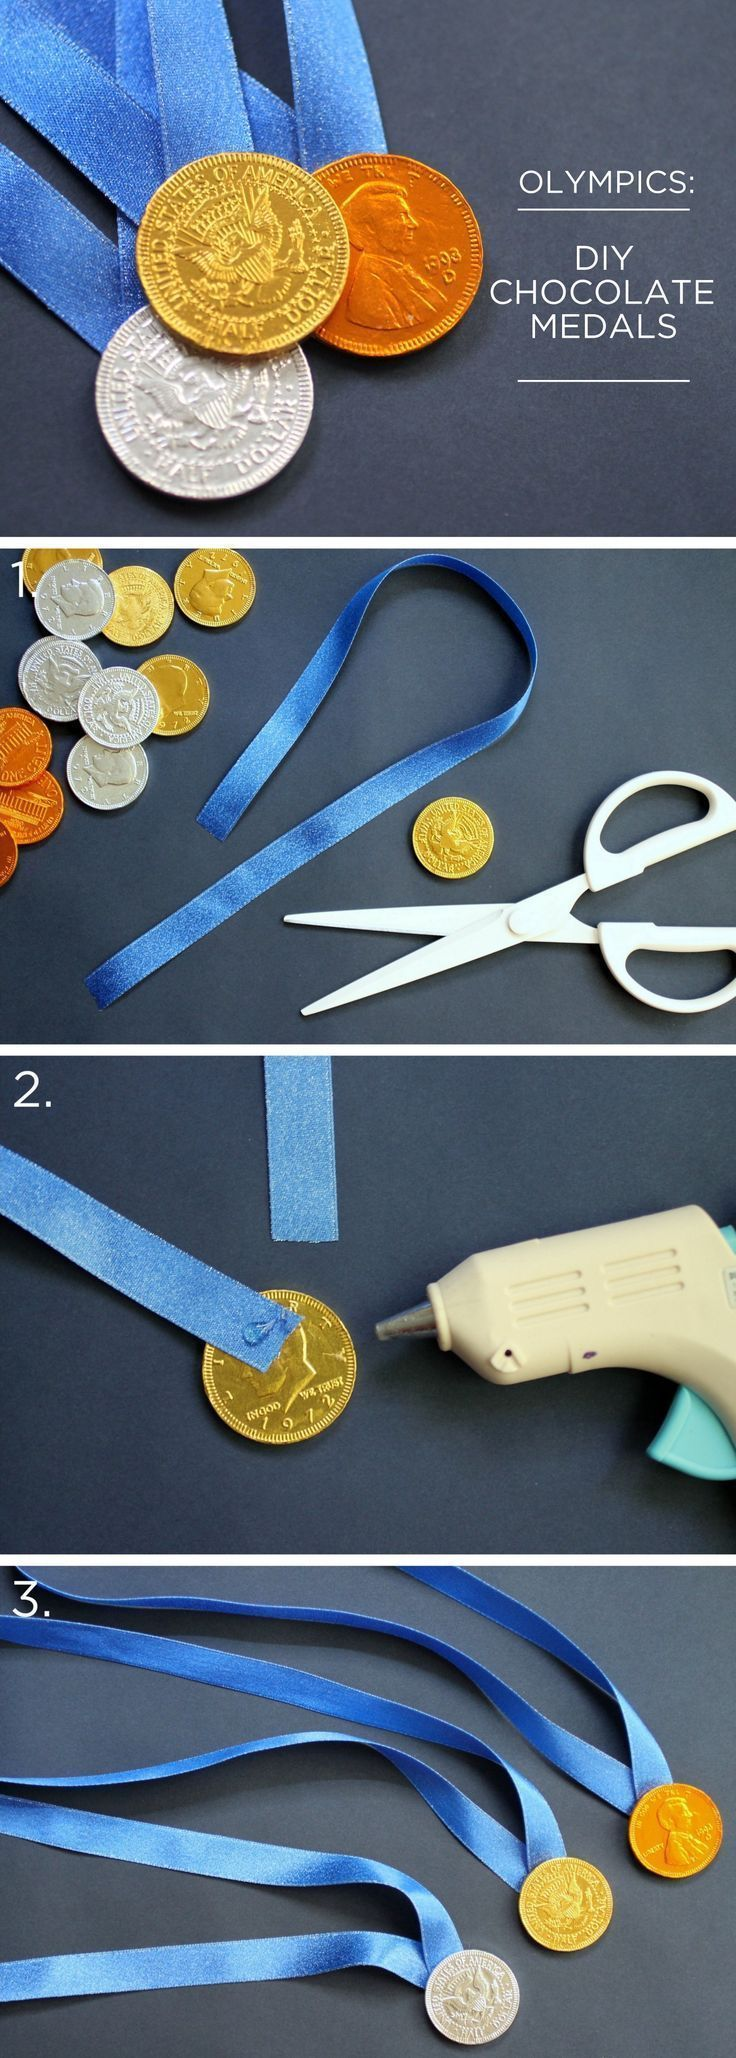 Take a look at this Winter Olympics #DIY Chocolate Medals How to Infographic #basketballforkids